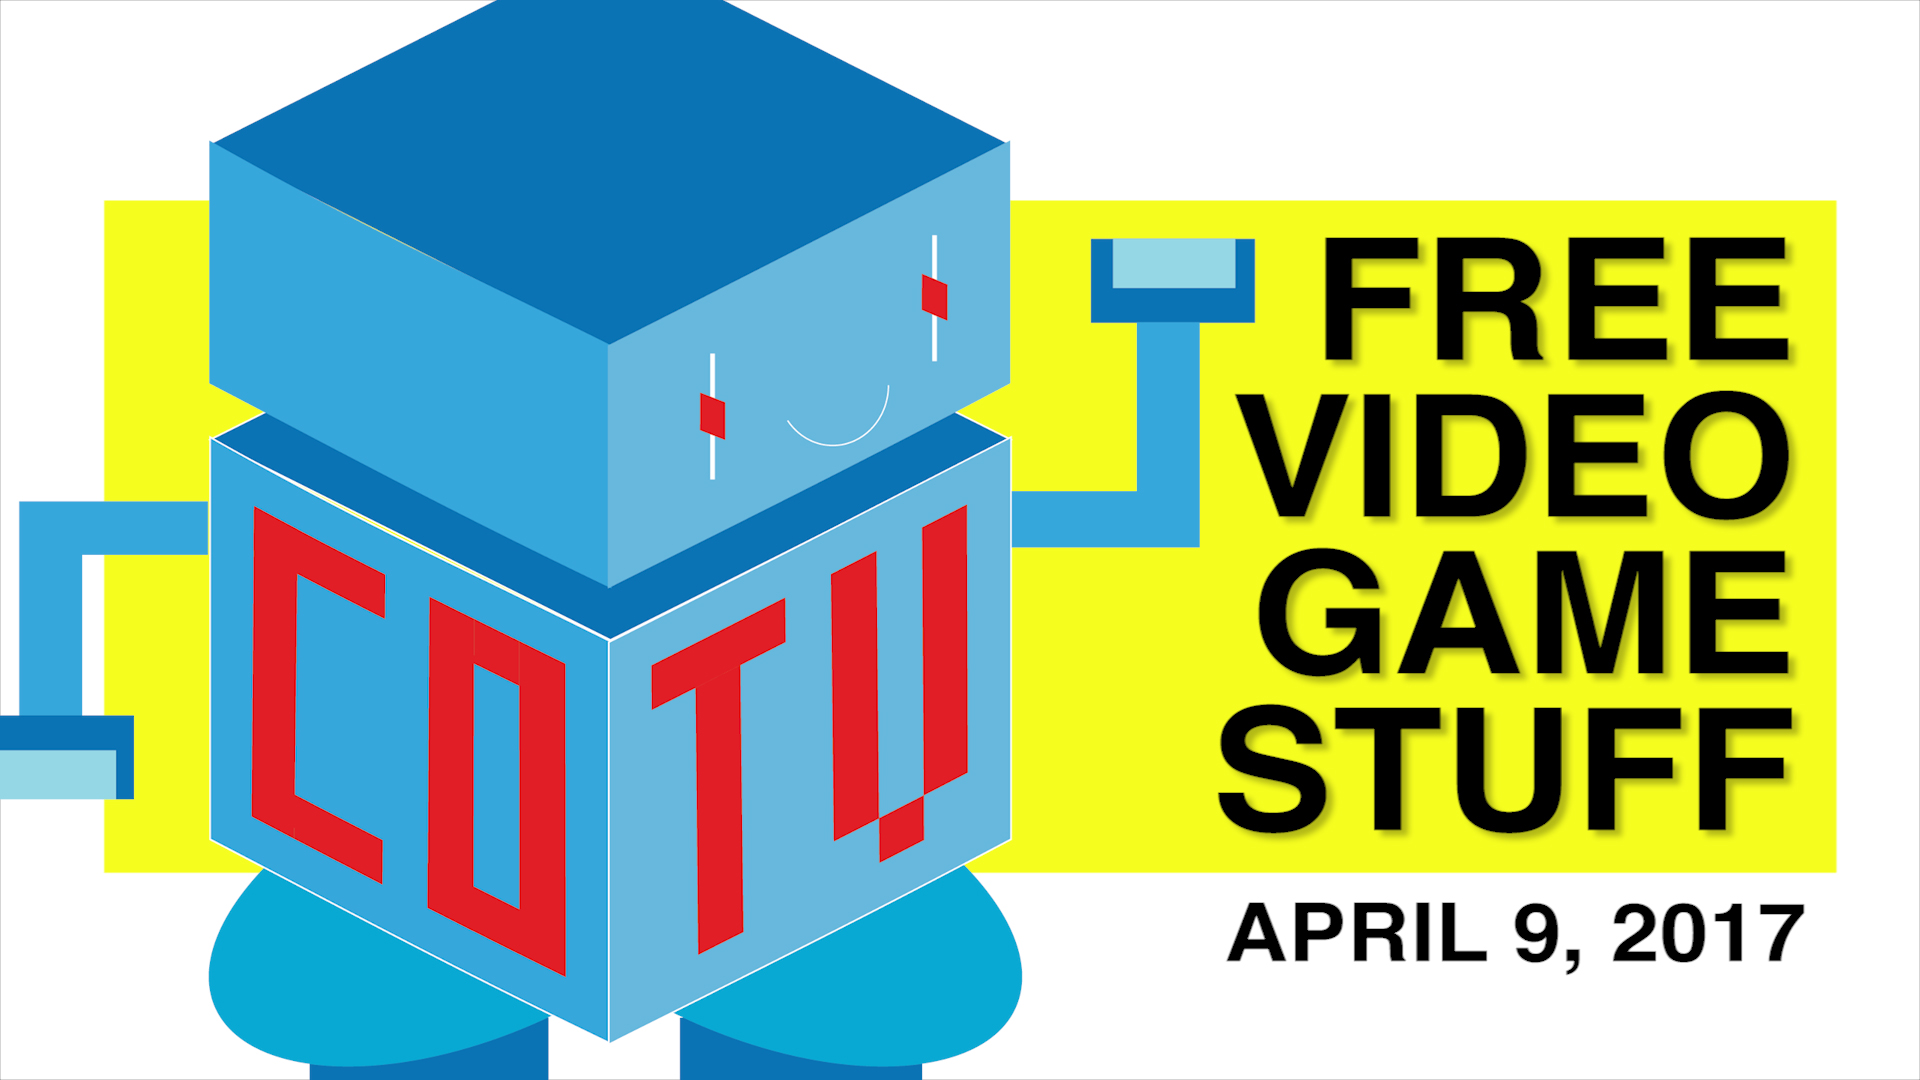 Free Video Game Stuff This Week April 9 2017